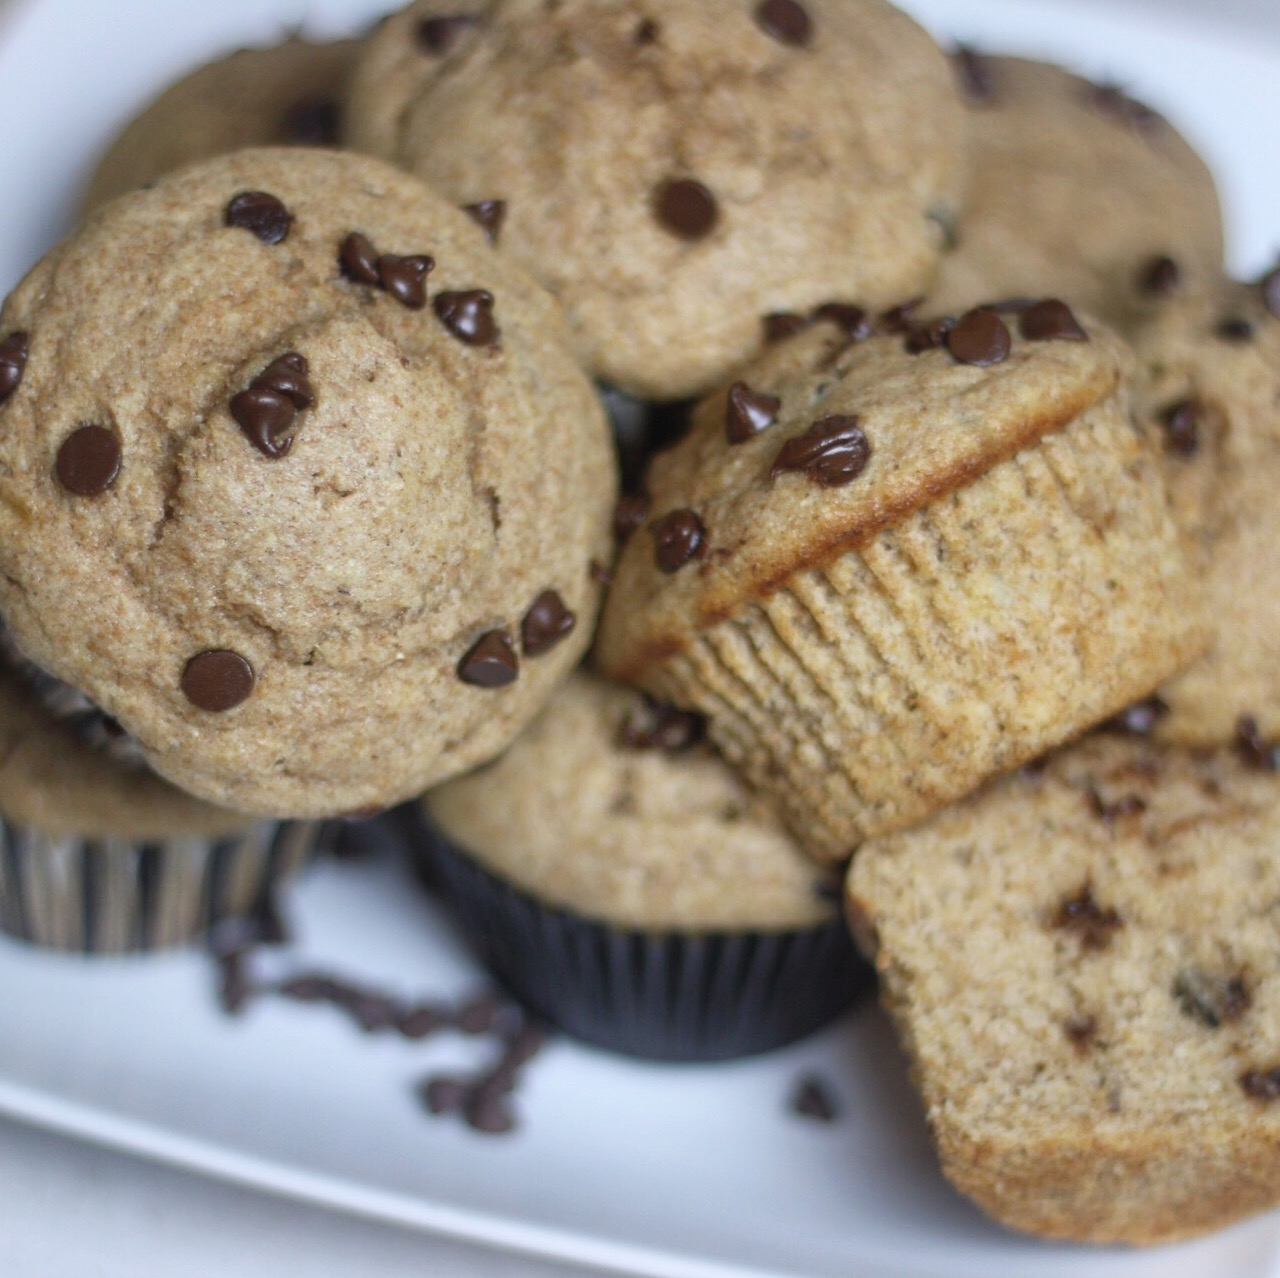 Whole-Wheat Banana and Chocolate Chip Muffins